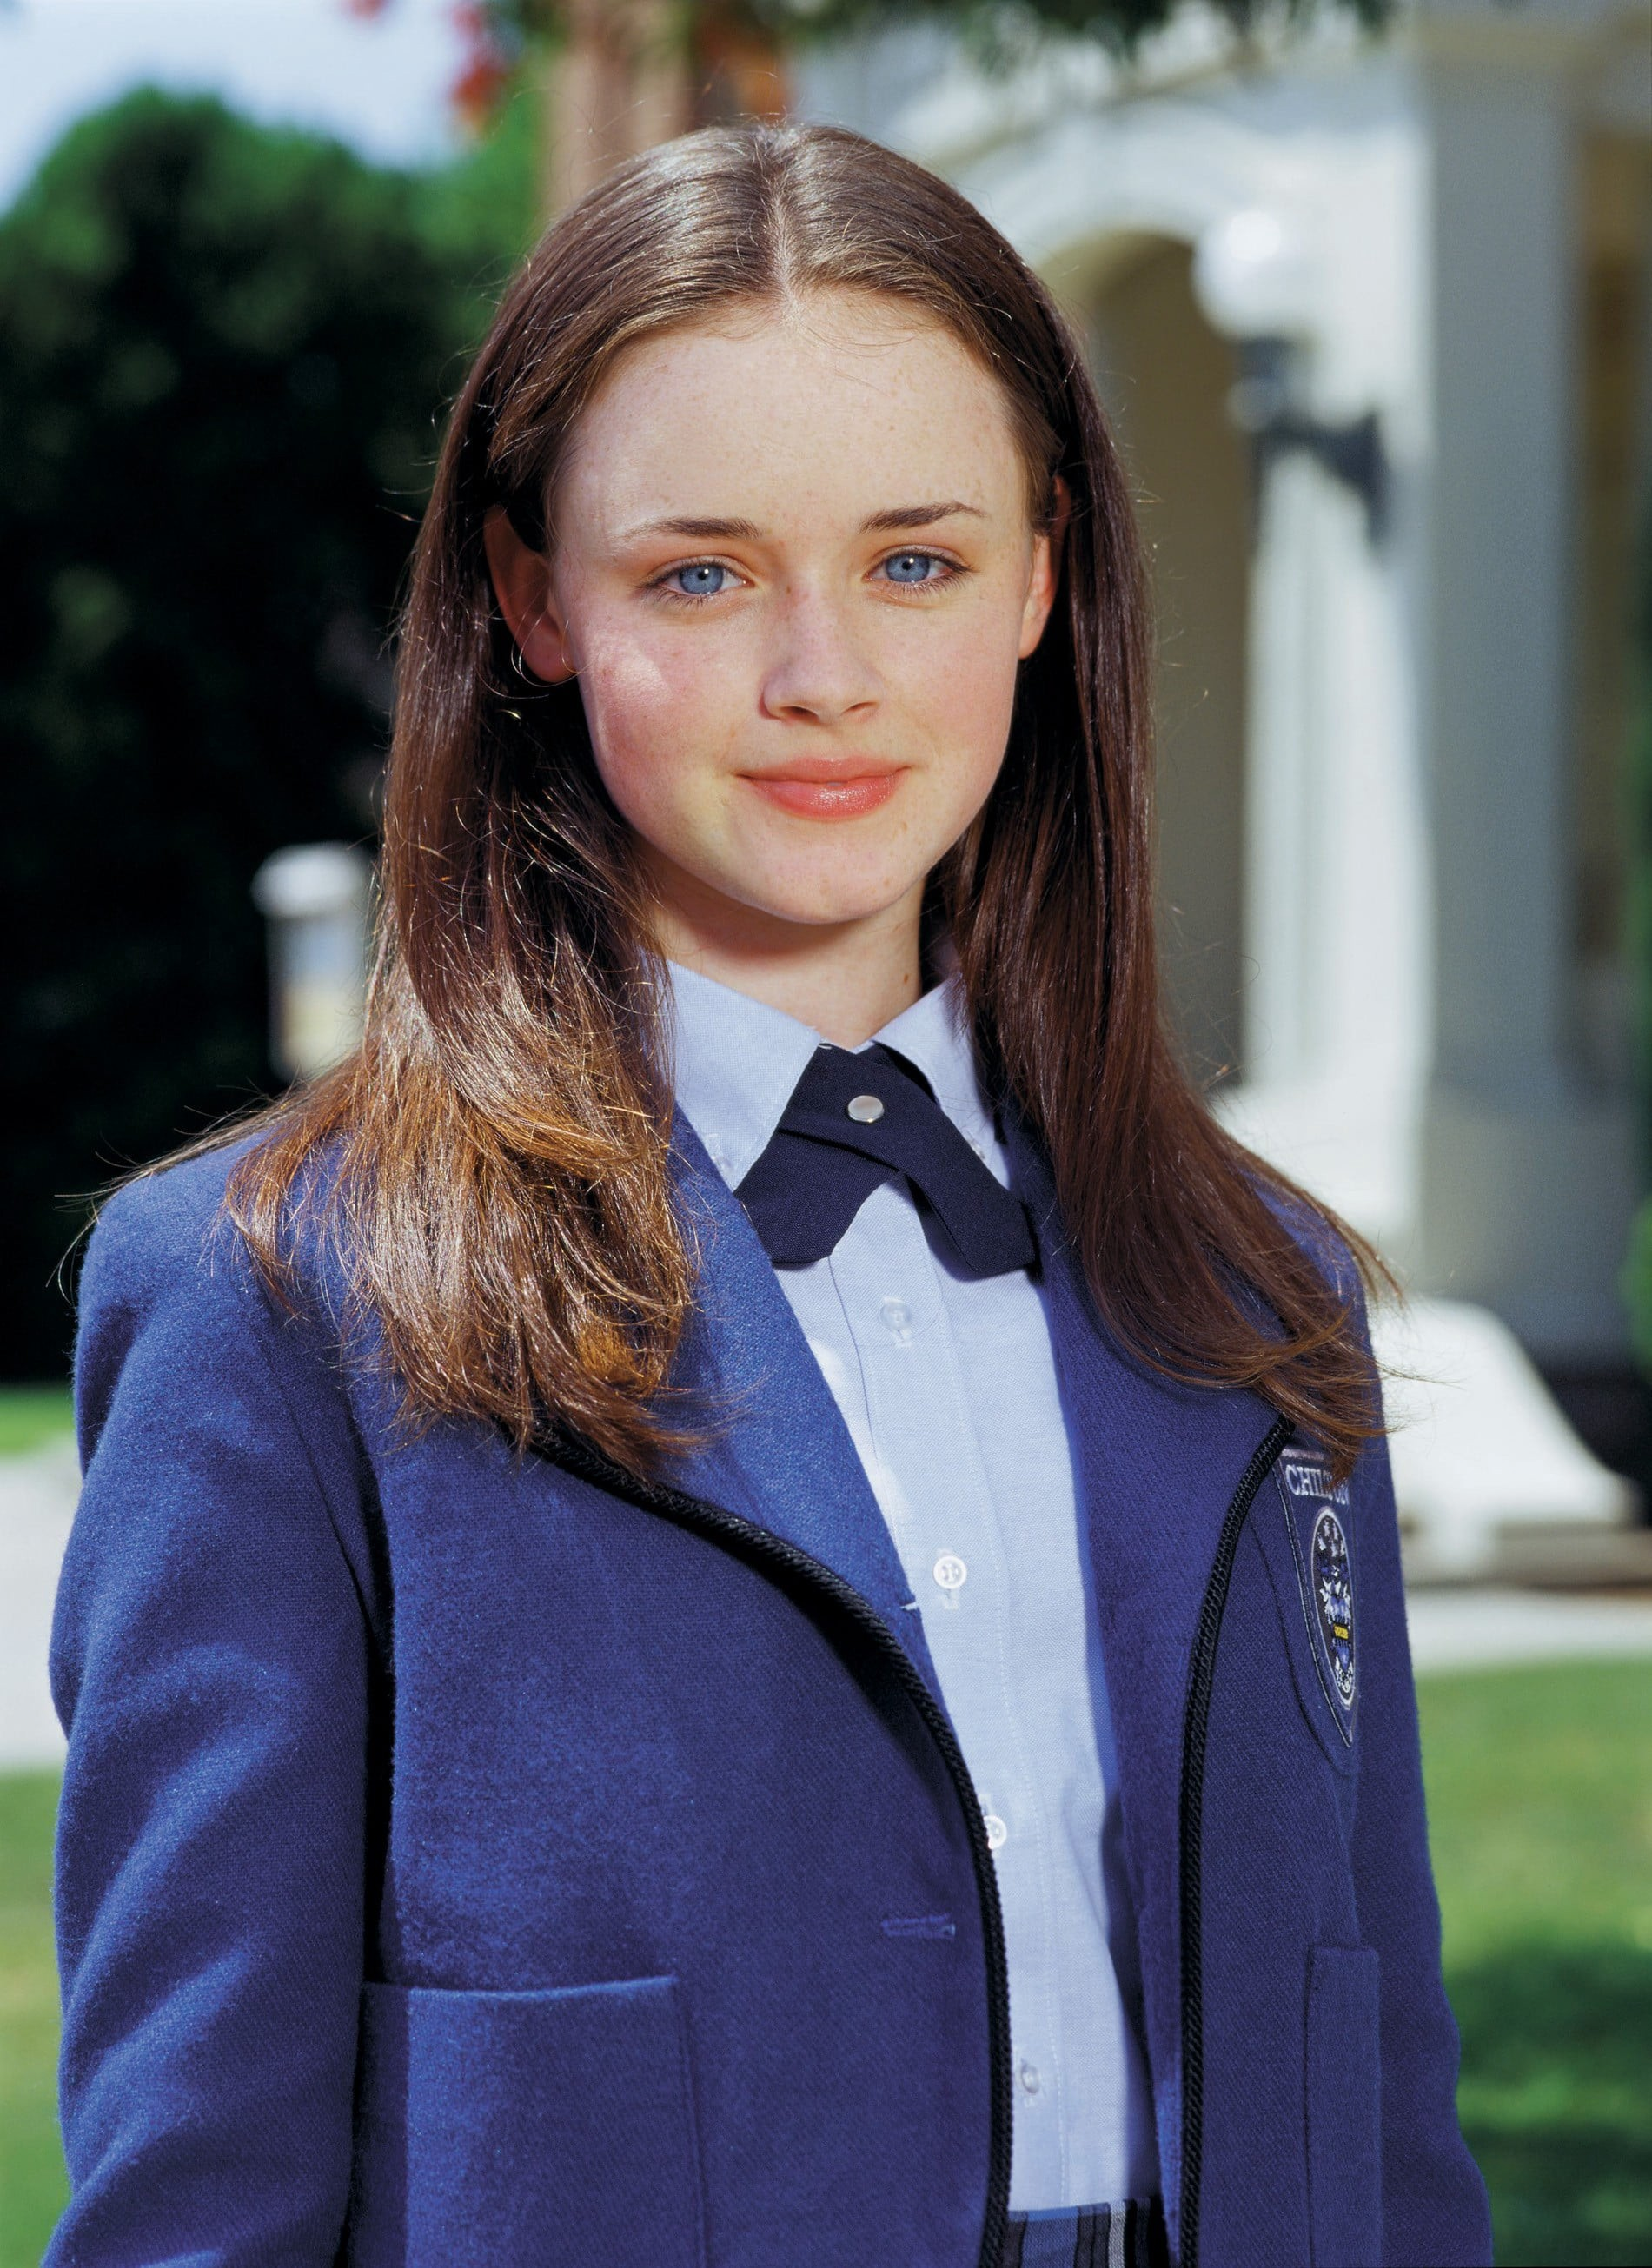 """A picture of Alexis Bledel as """"Rory Gilmore"""" on the hit TV series """"Gilmore Girls"""""""